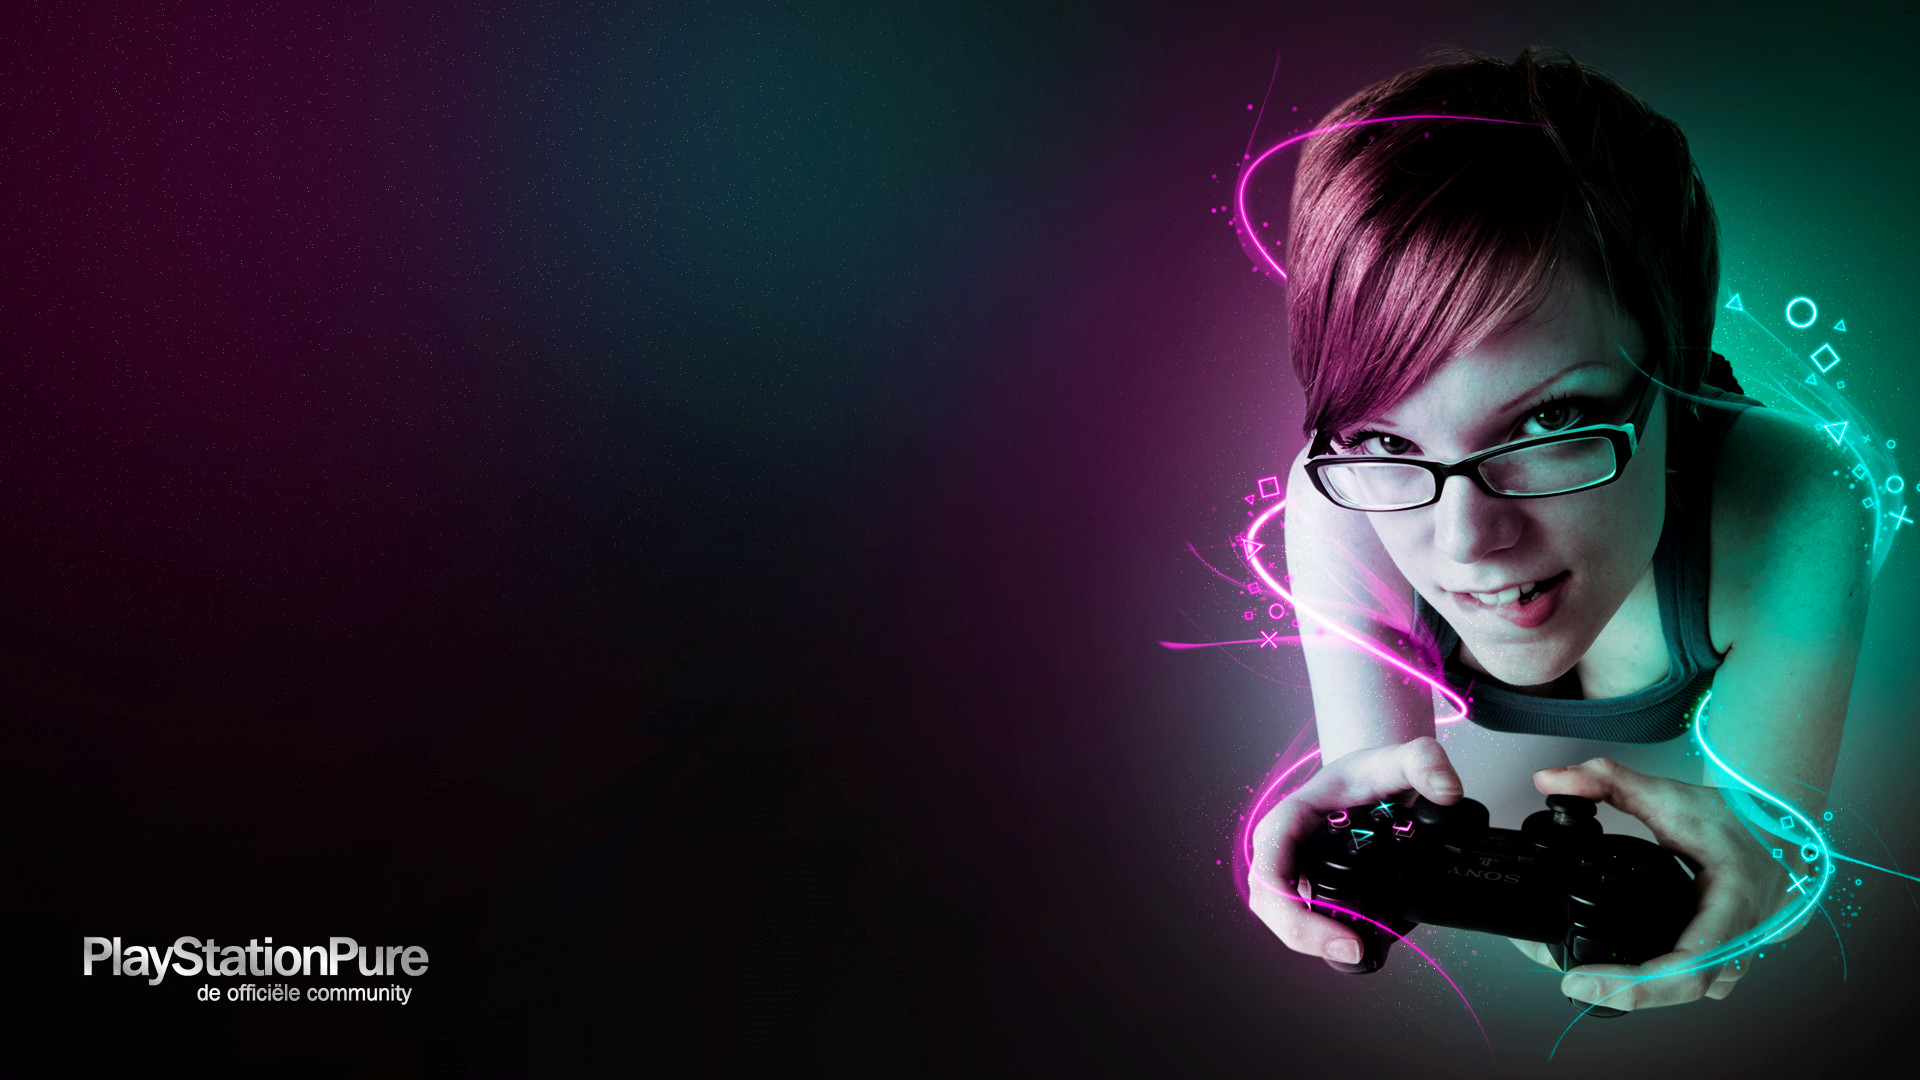 Ps3 Wallpapers And Themes 78 Pictures